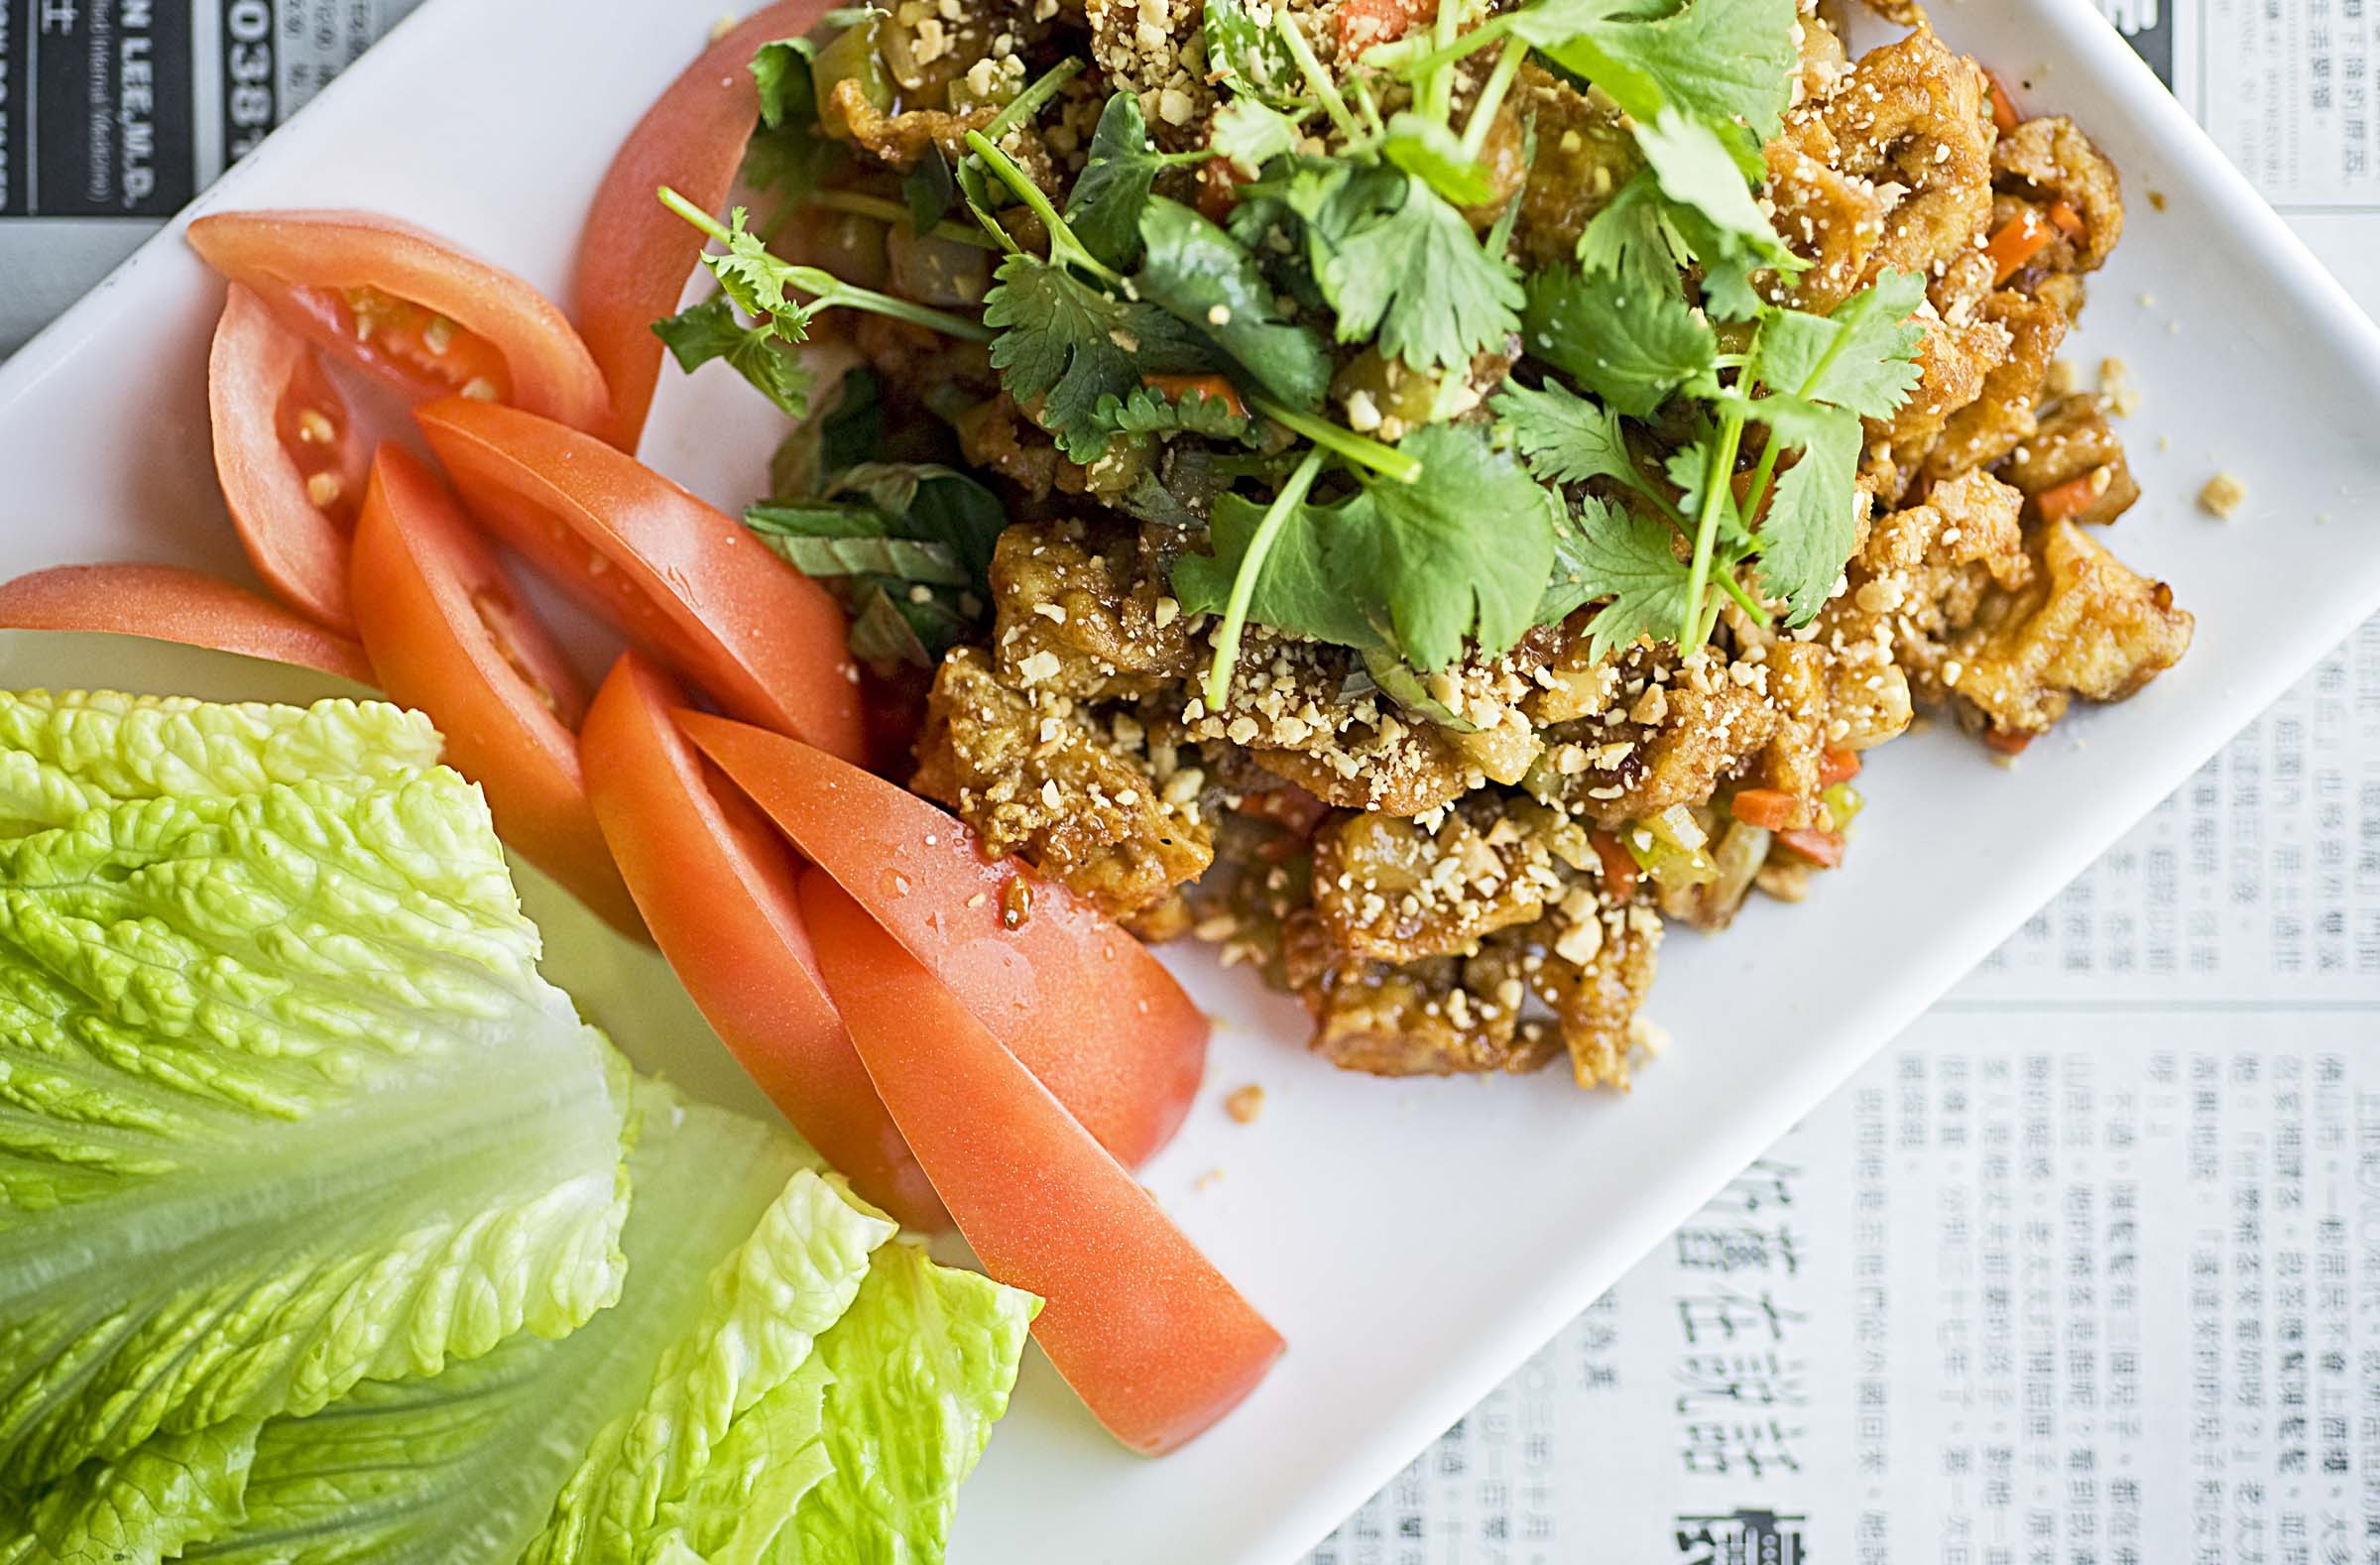 Lettuce wraps are a crisp starting point for a meal at Green Leaf Vegetarian on West Broad Street in Henrico. - ASH DANIEL